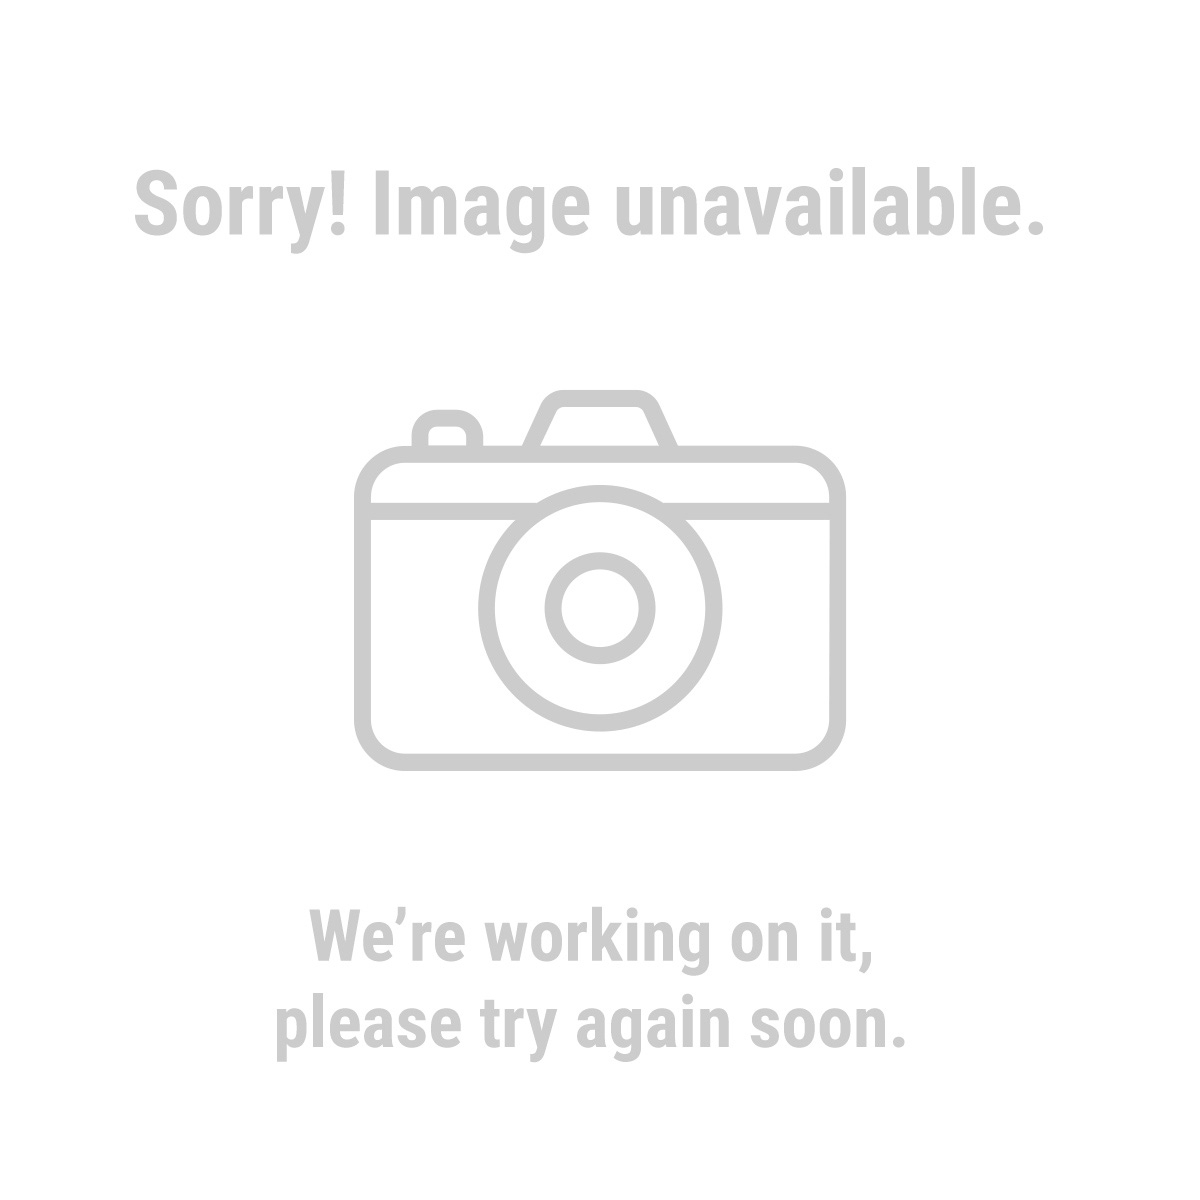 Coleman Ac Wiring Diagram likewise Hp Electric Motor 3 Phase furthermore Product details also Air  pressor 3hp 2 Piston V Style Twin Cylinder Pump Motor Head Air Tool furthermore 204068467. on air compressor 10 hp motor